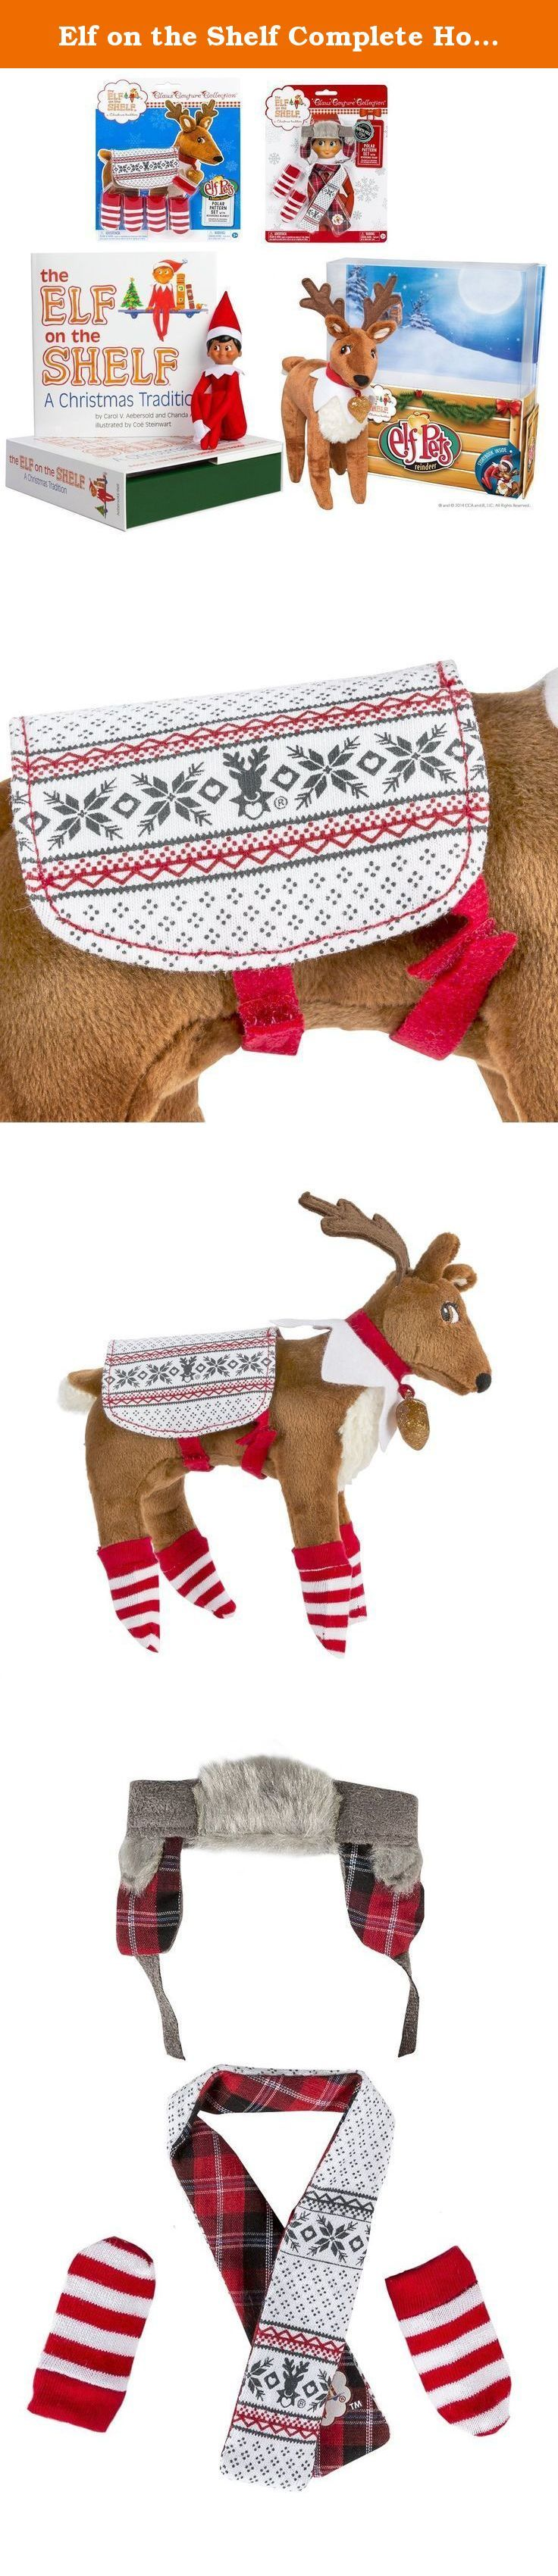 Elf on the Shelf Complete Holiday Gift Bundle: Boy Scout Elf (Brown Eyes), Cuddly Plush Reindeer Elf Pet, Christmas Tradition Storybook, A Reindeer Tradition Storybook, and (2) Matching Polar Pattern Winter Wear Sets. Every night this Scout Elf will return to the North Pole to say whether your family has been naughty or nice. Santa takes that information every night until Christmas Eve when he decides if you're getting presents or coal this year. This reindeer is the perfect combination…